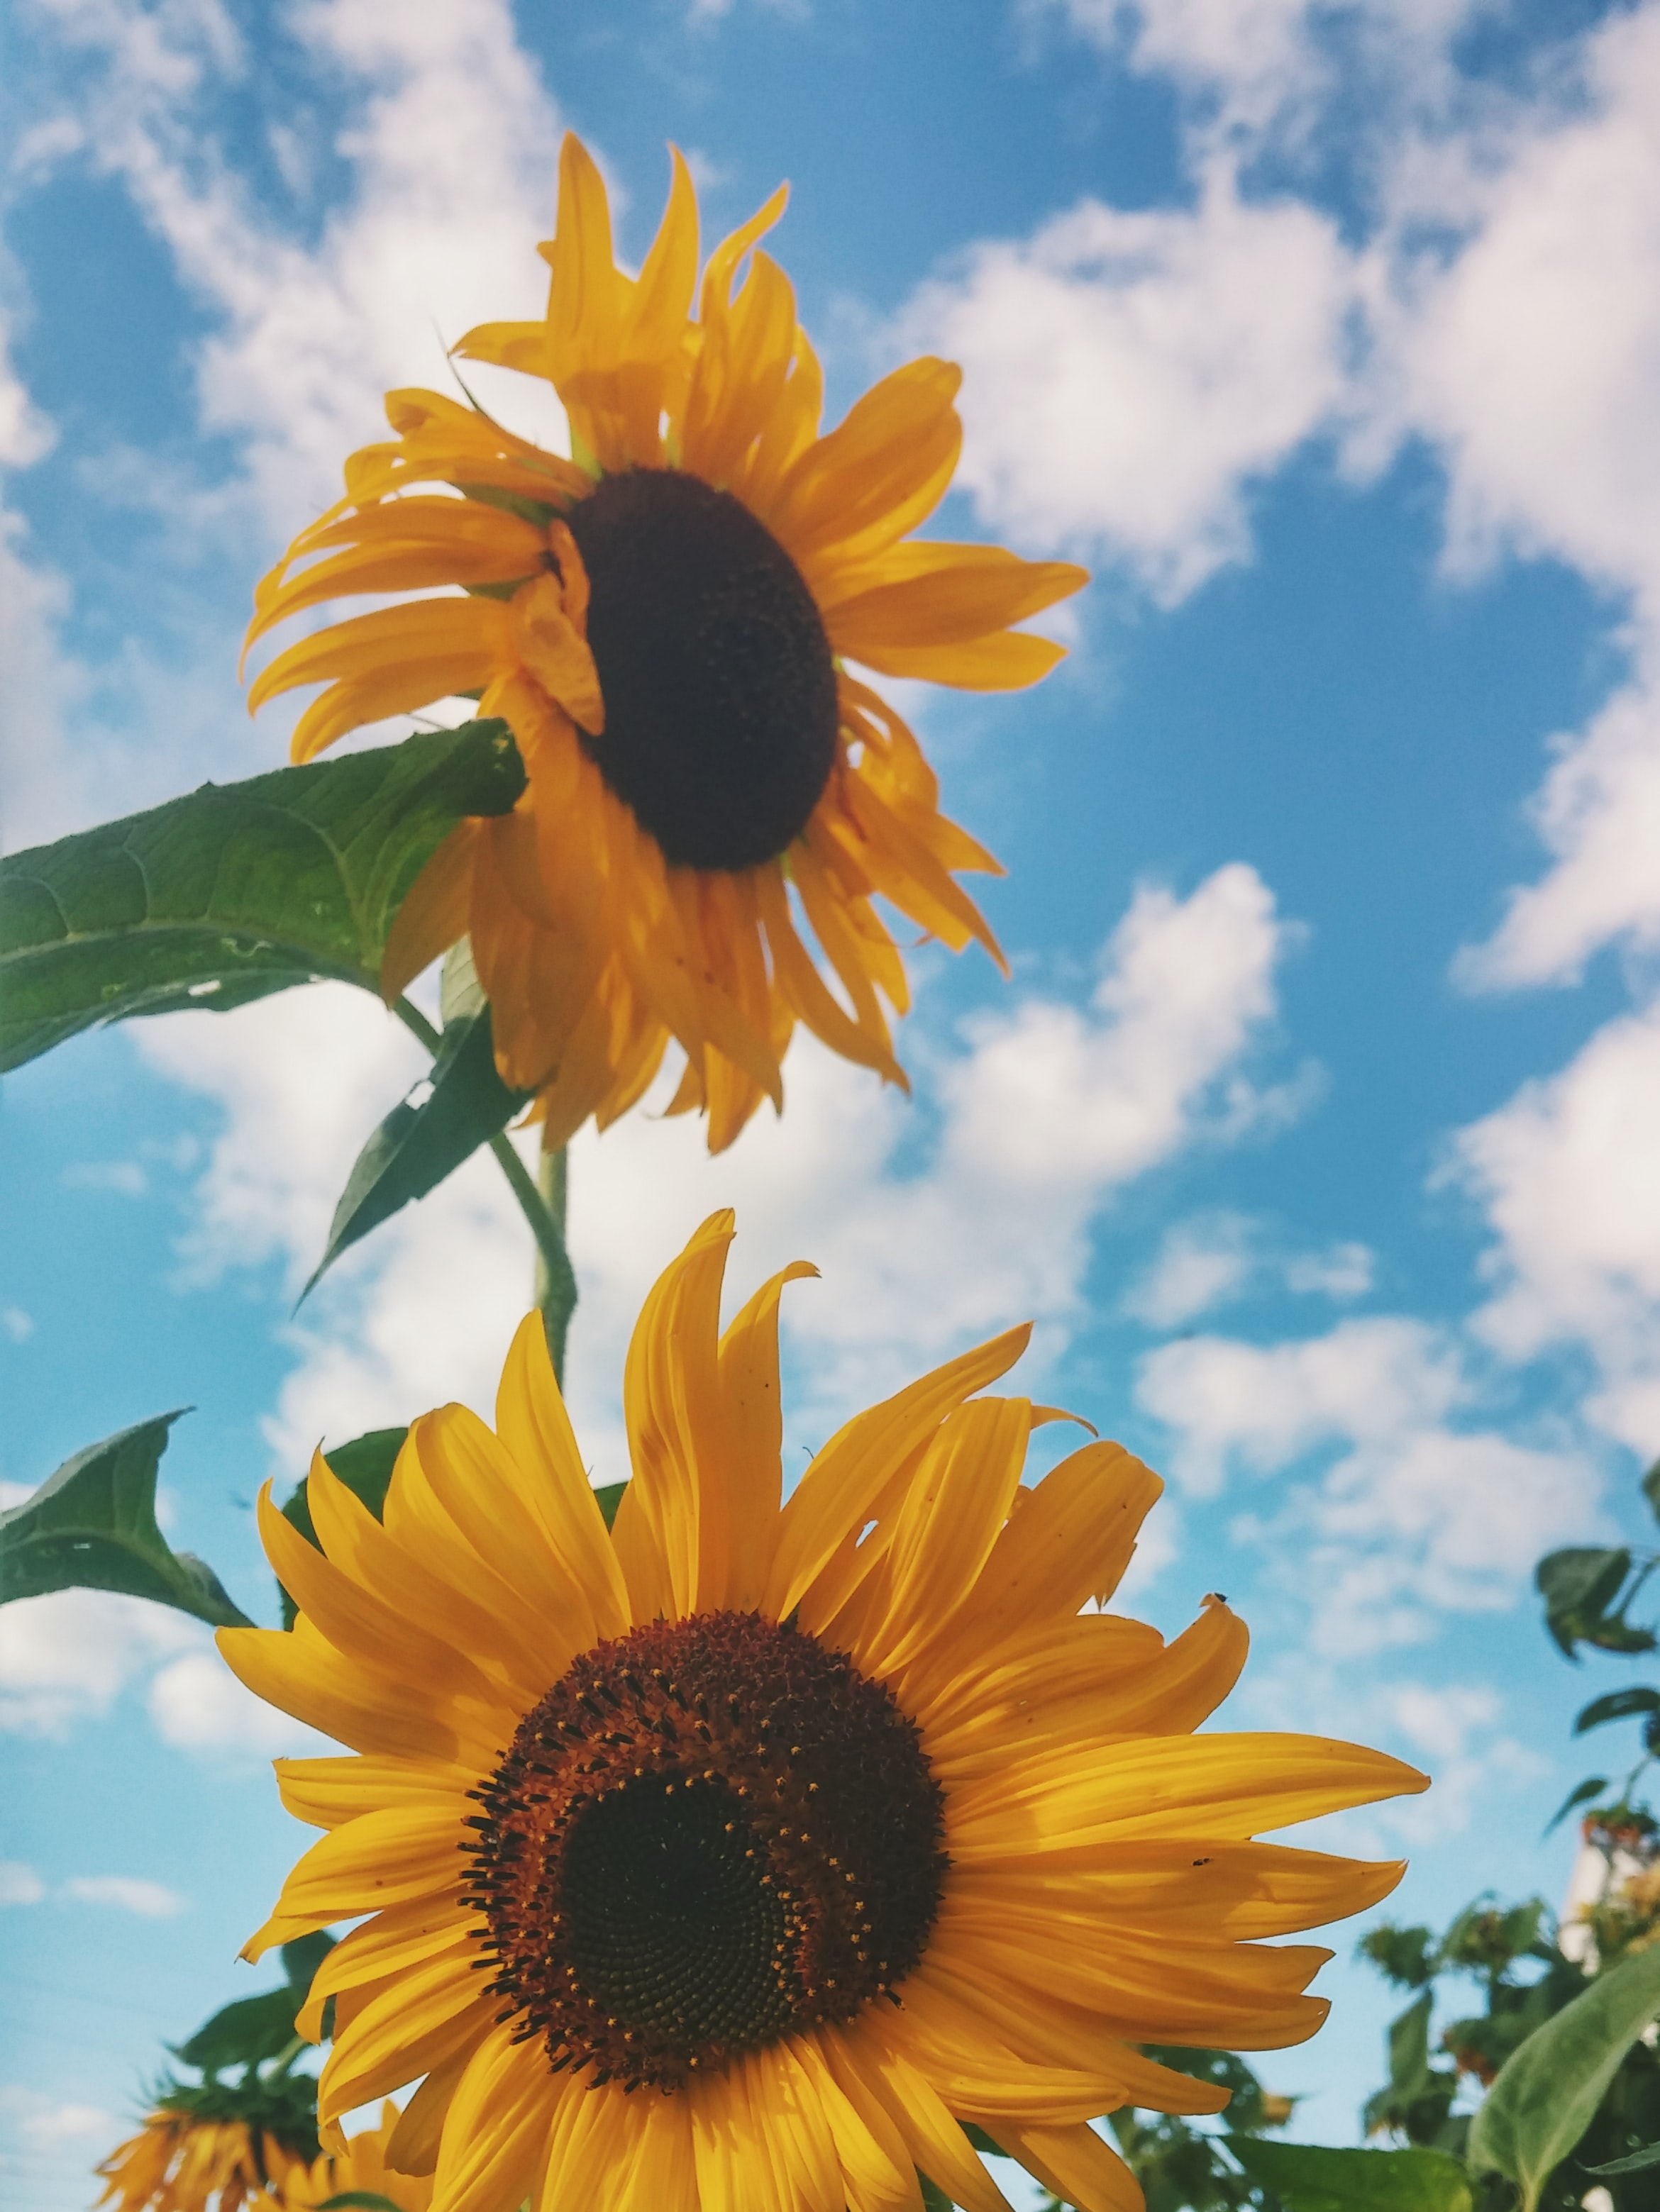 A low-angle shot of sunflowers in a field